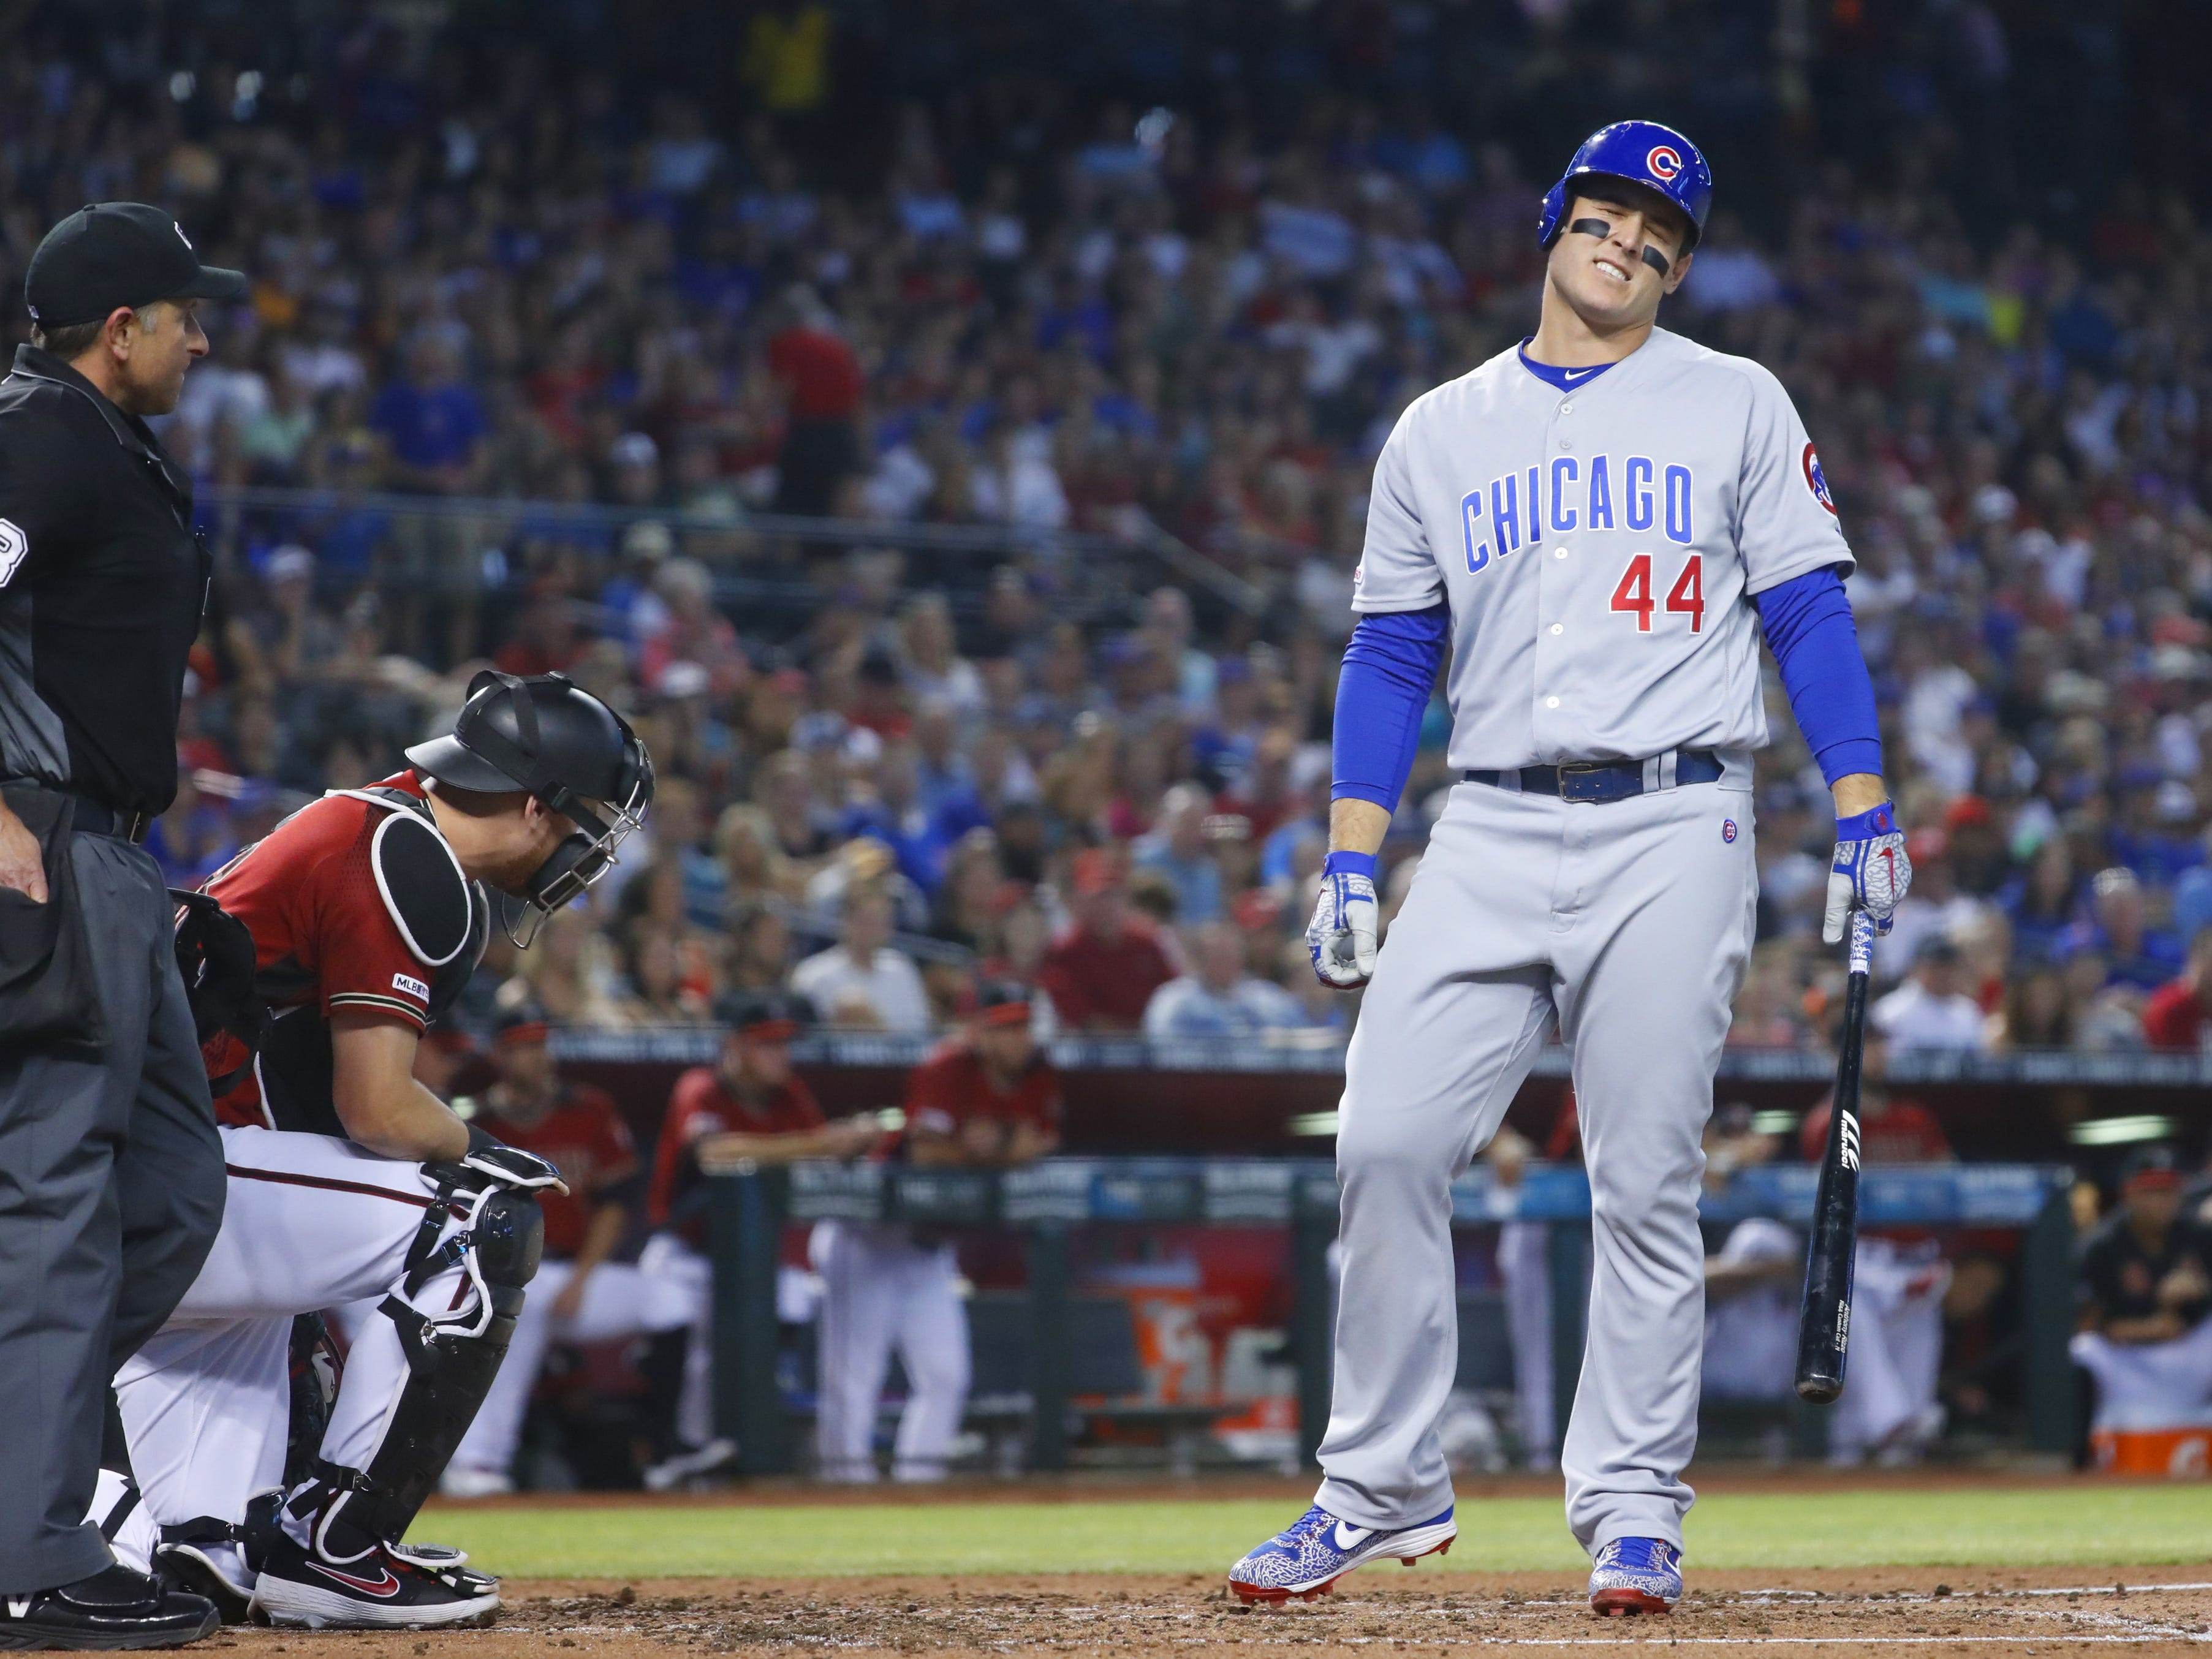 Cubs' Anthony Rizzo (44) reacts after being hit by a ball during the third inning by Diamondbacks' Luke Weaver at Chase Field in Phoenix, Ariz. on April 28, 2019.